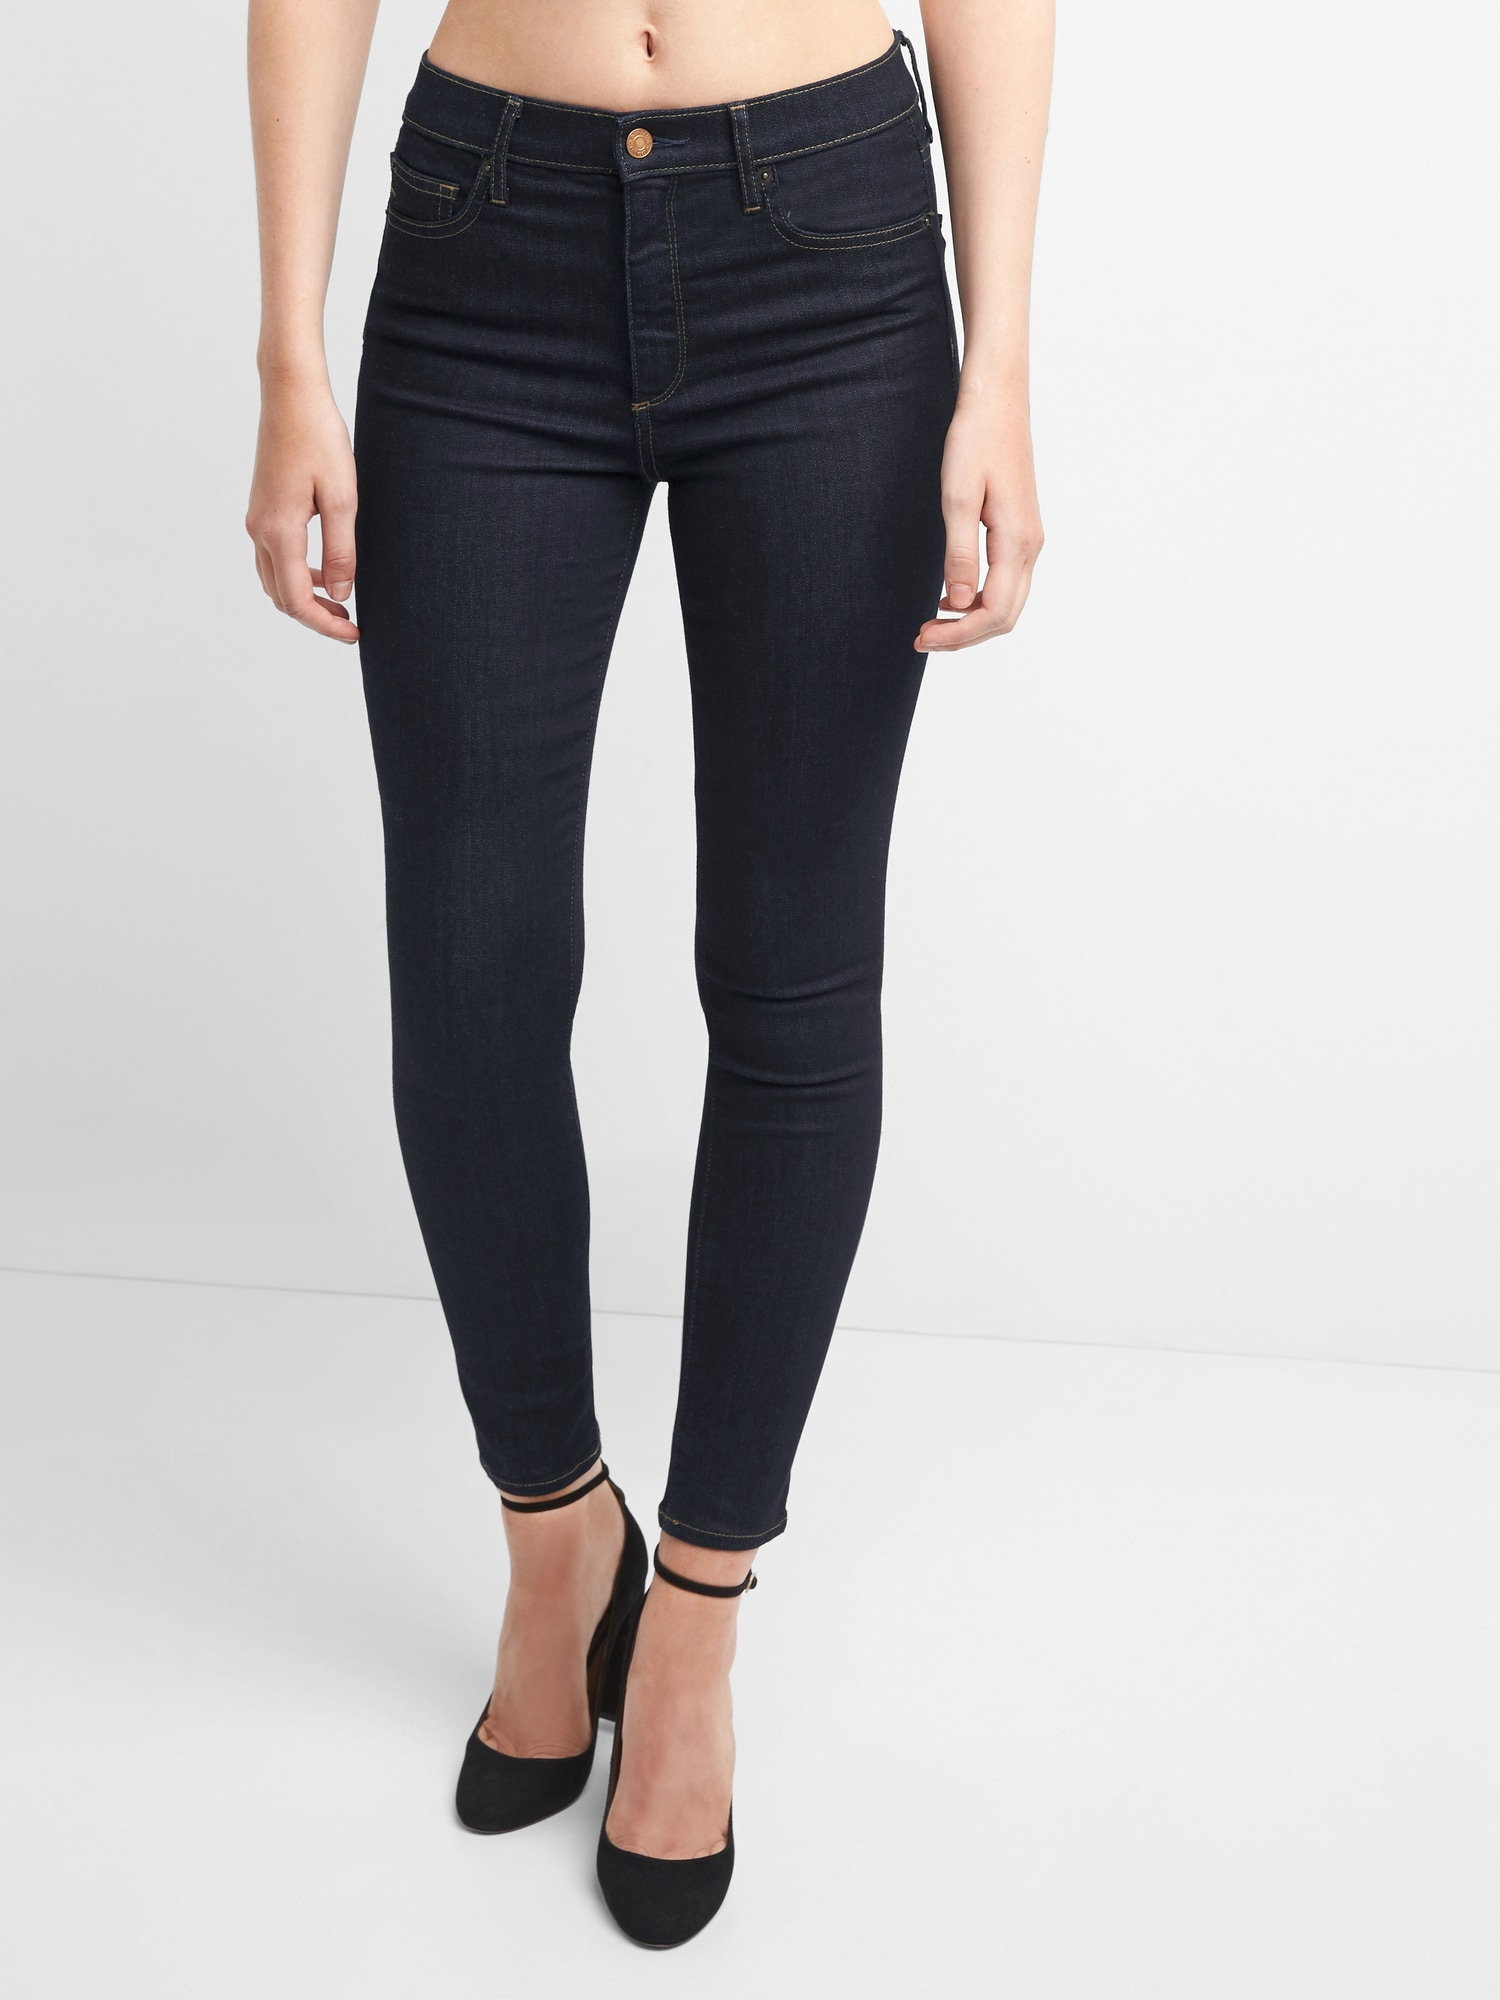 Gap rise high skinny jeans exclusive photo